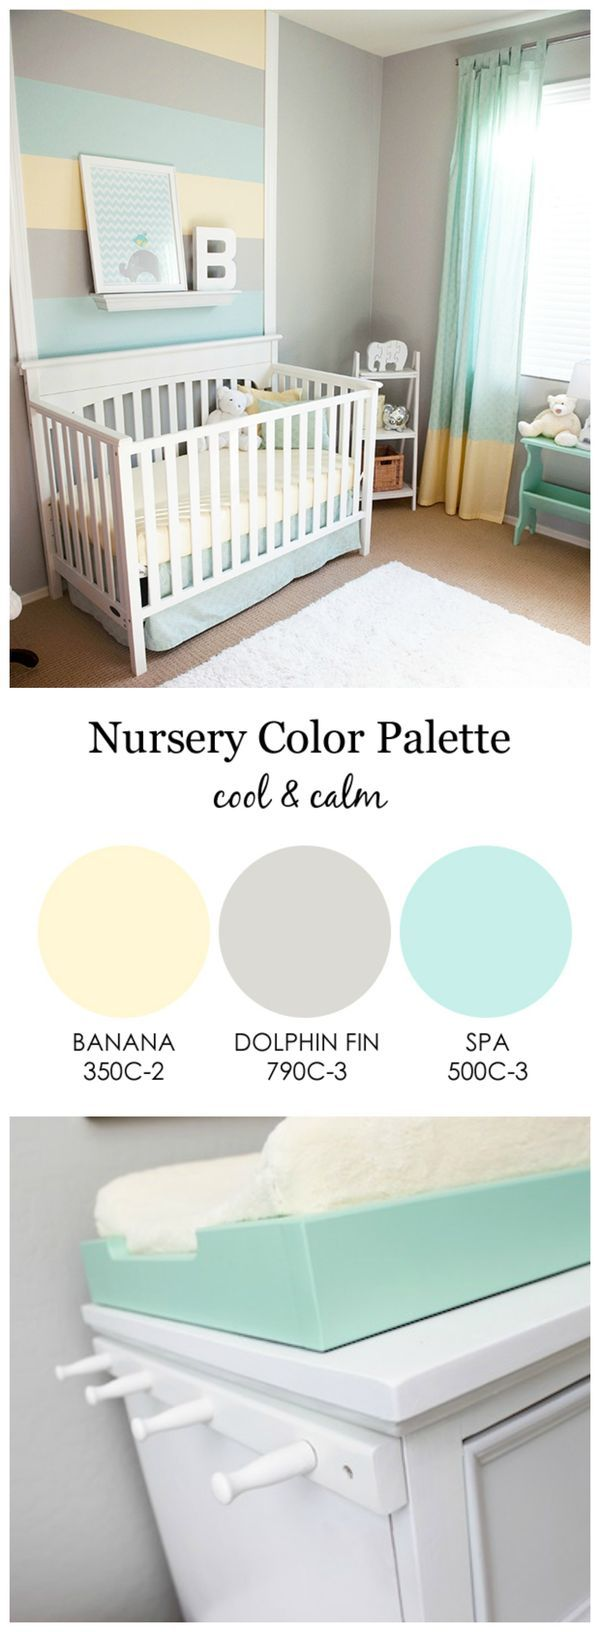 Cool And Calm, Gender Neutral Nursery   Love The Mint Green, Gray And Light